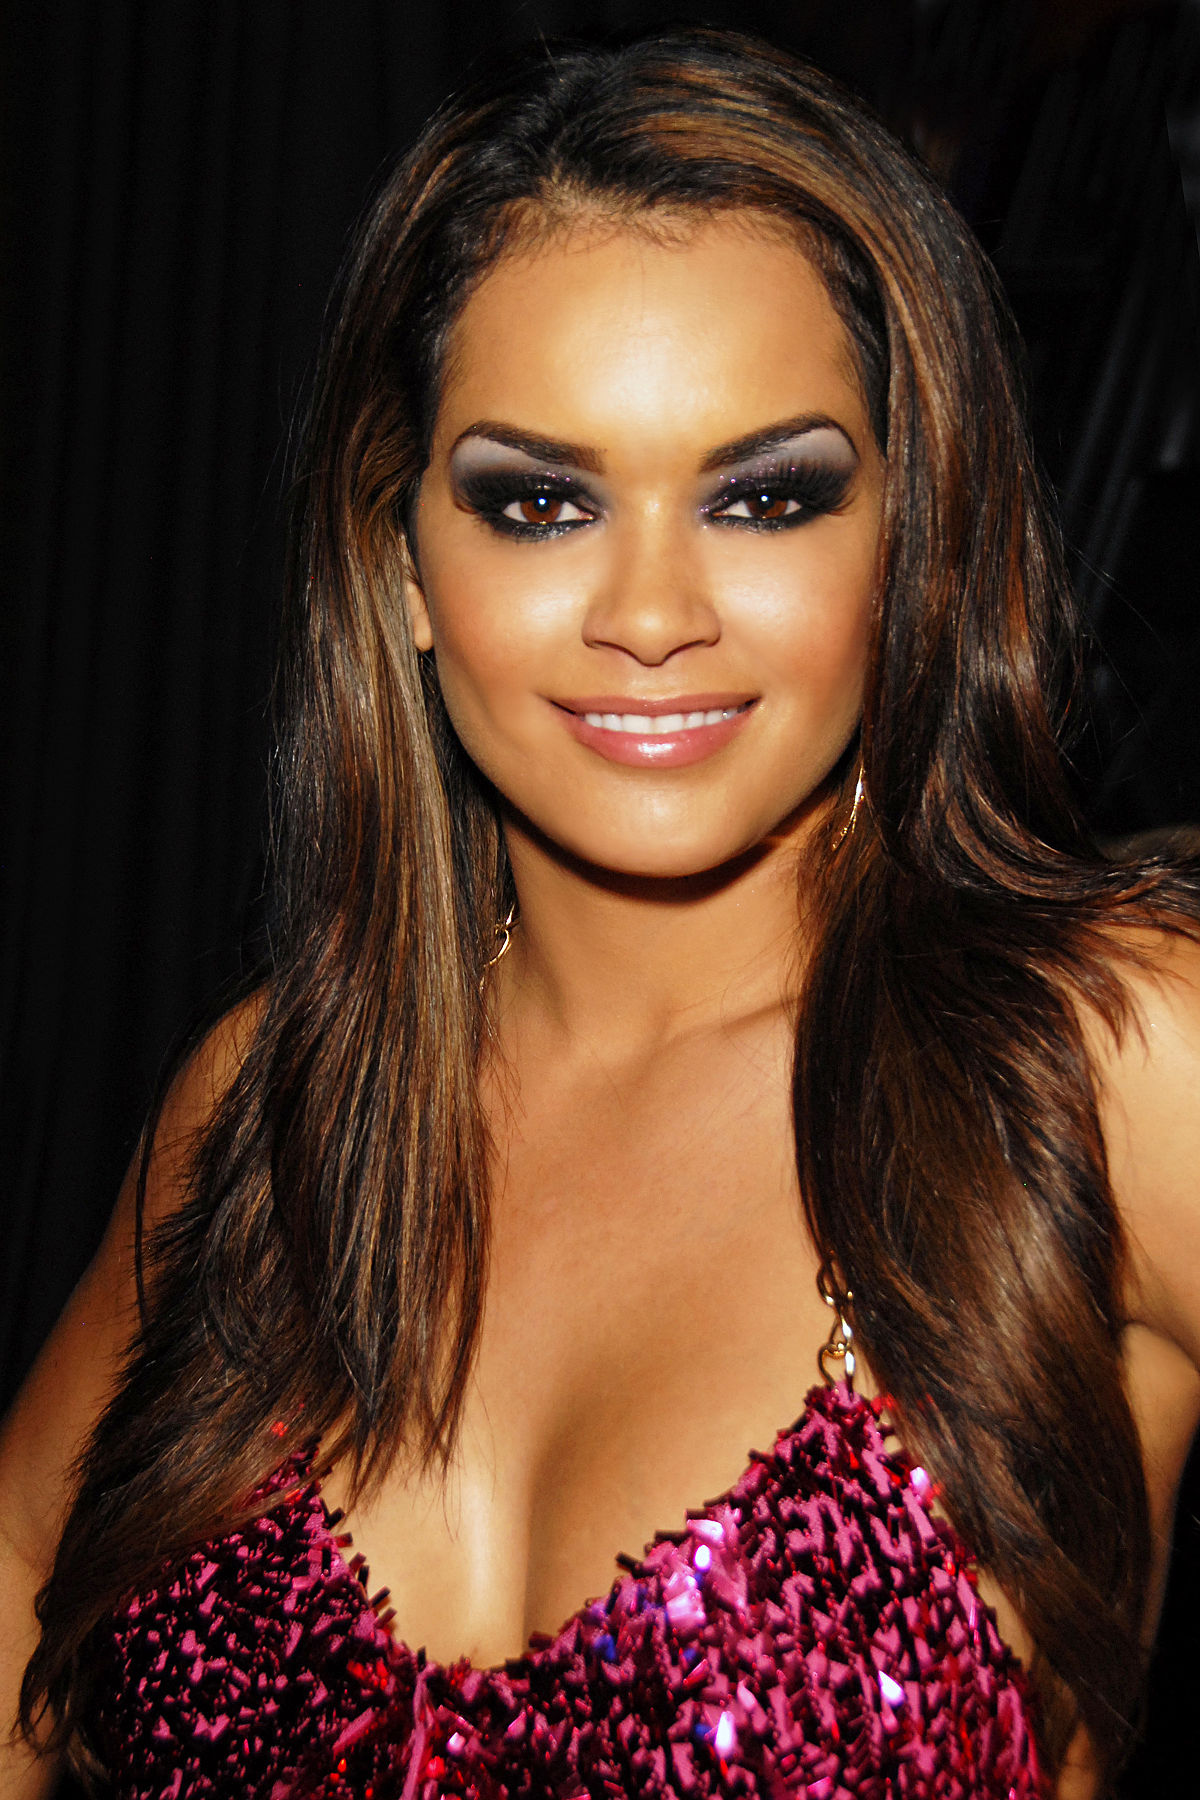 Daisy marie video